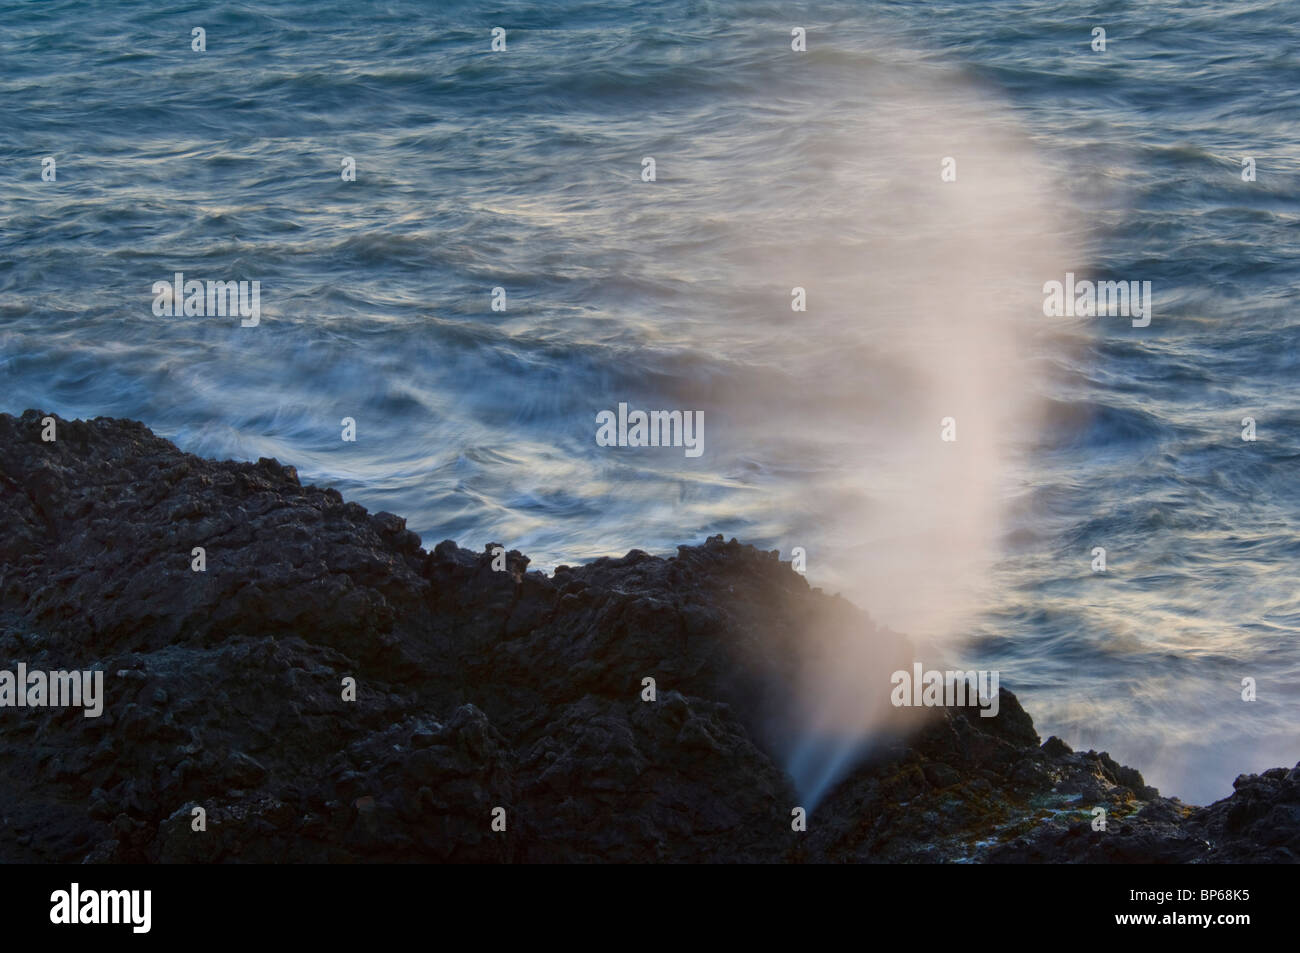 Spurt of water spraying in wind from blowhole in coastal rocks, Shelter Cove, on the Lost Coast, Humboldt County, - Stock Image